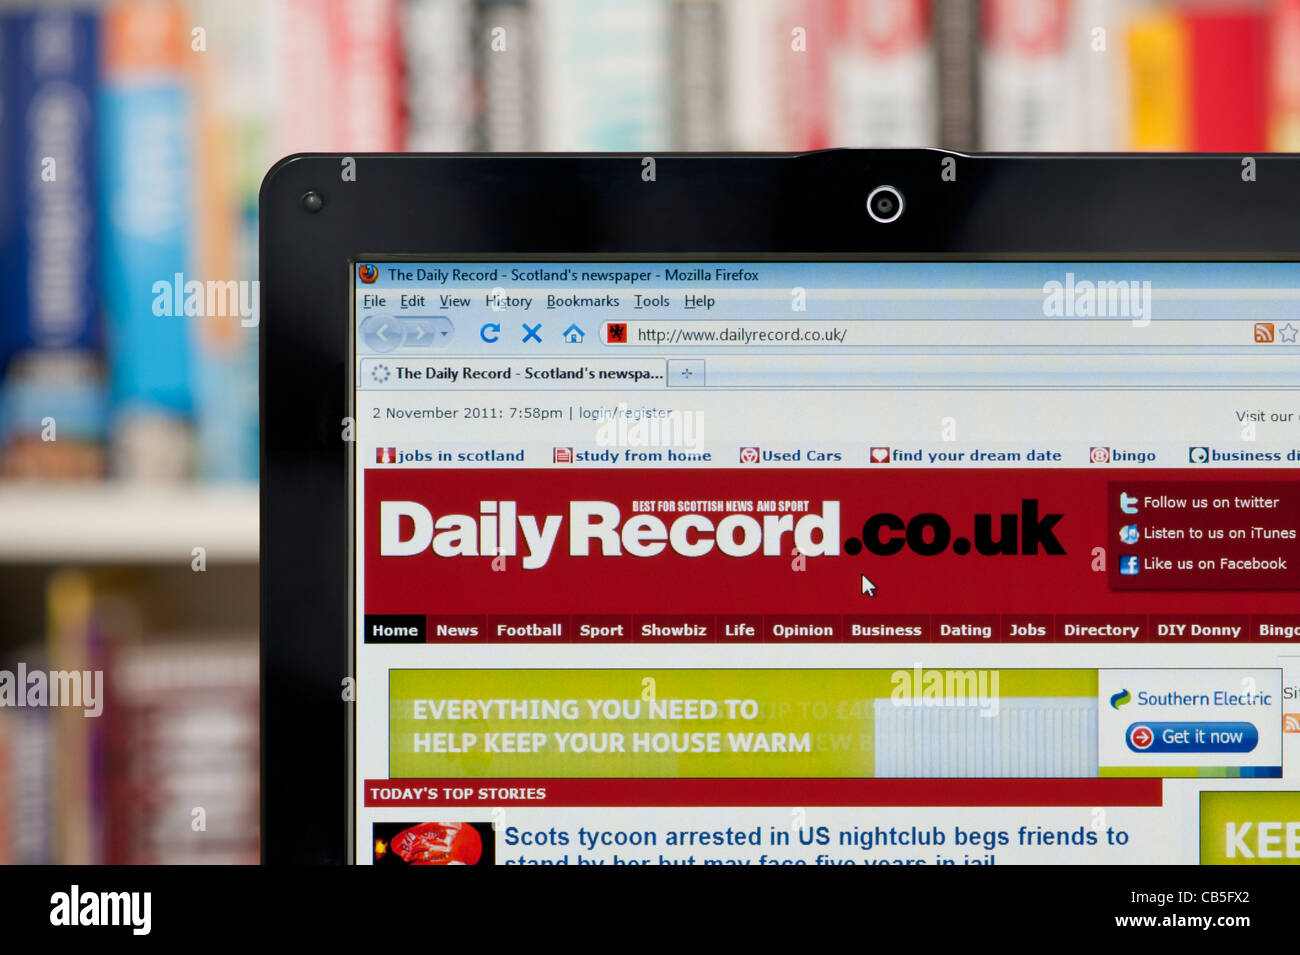 Daily record dating site